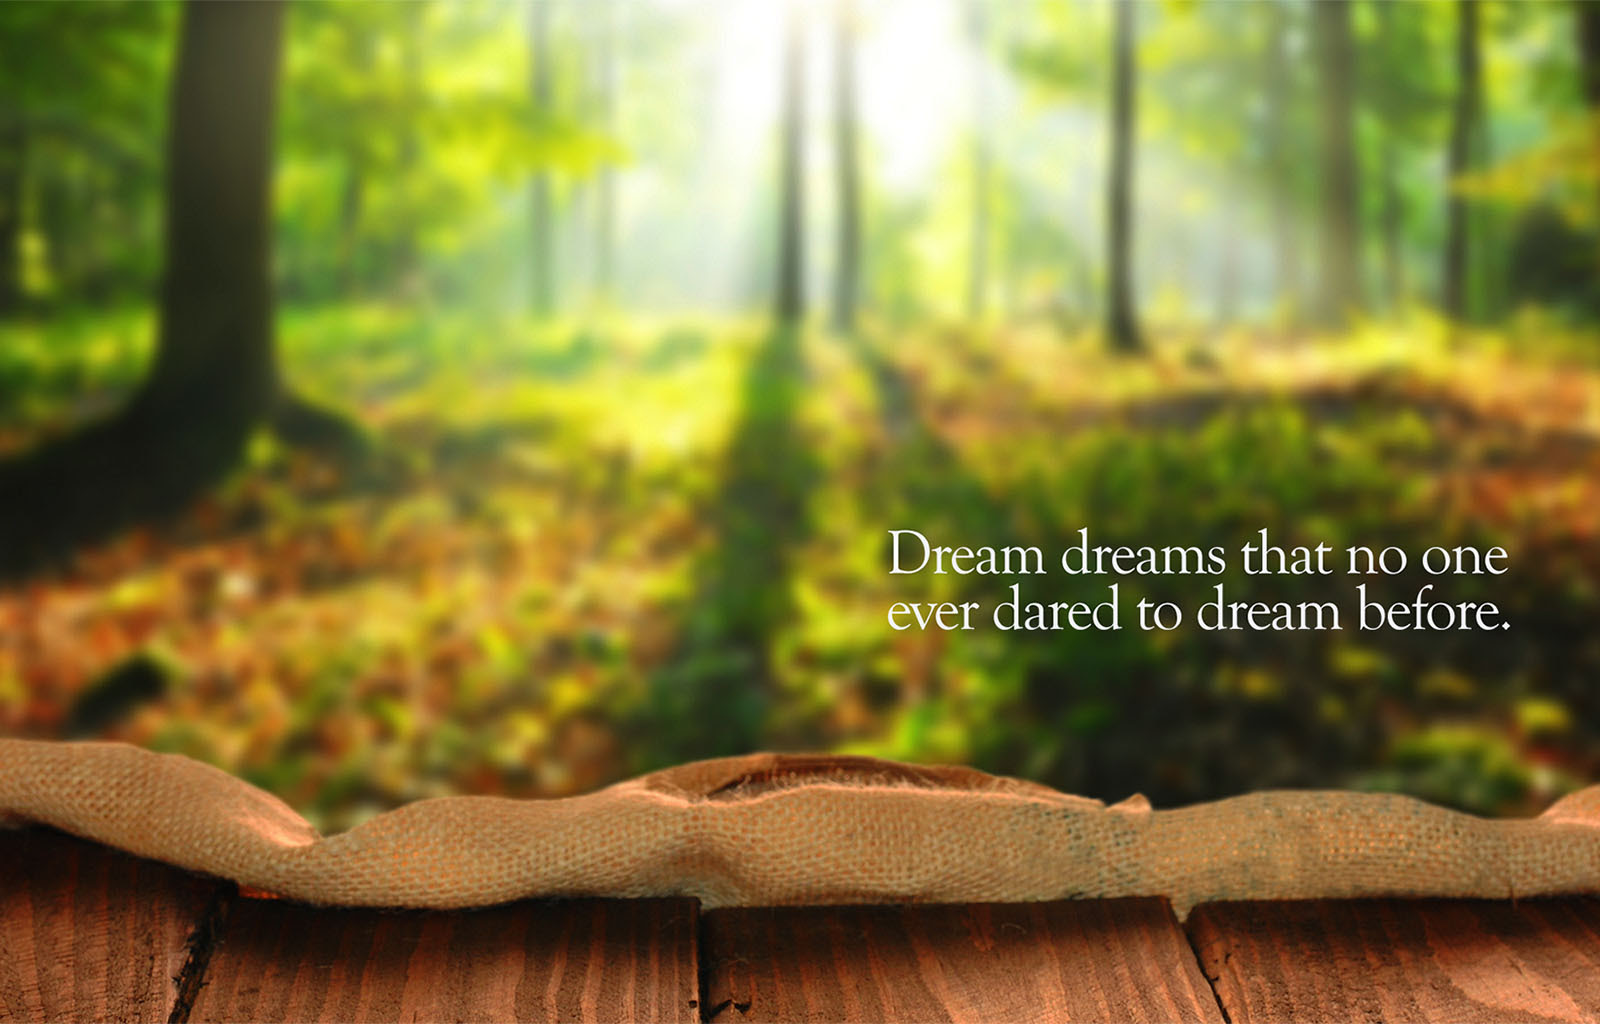 Dream Dreams Inspirational Quotes Quotivee